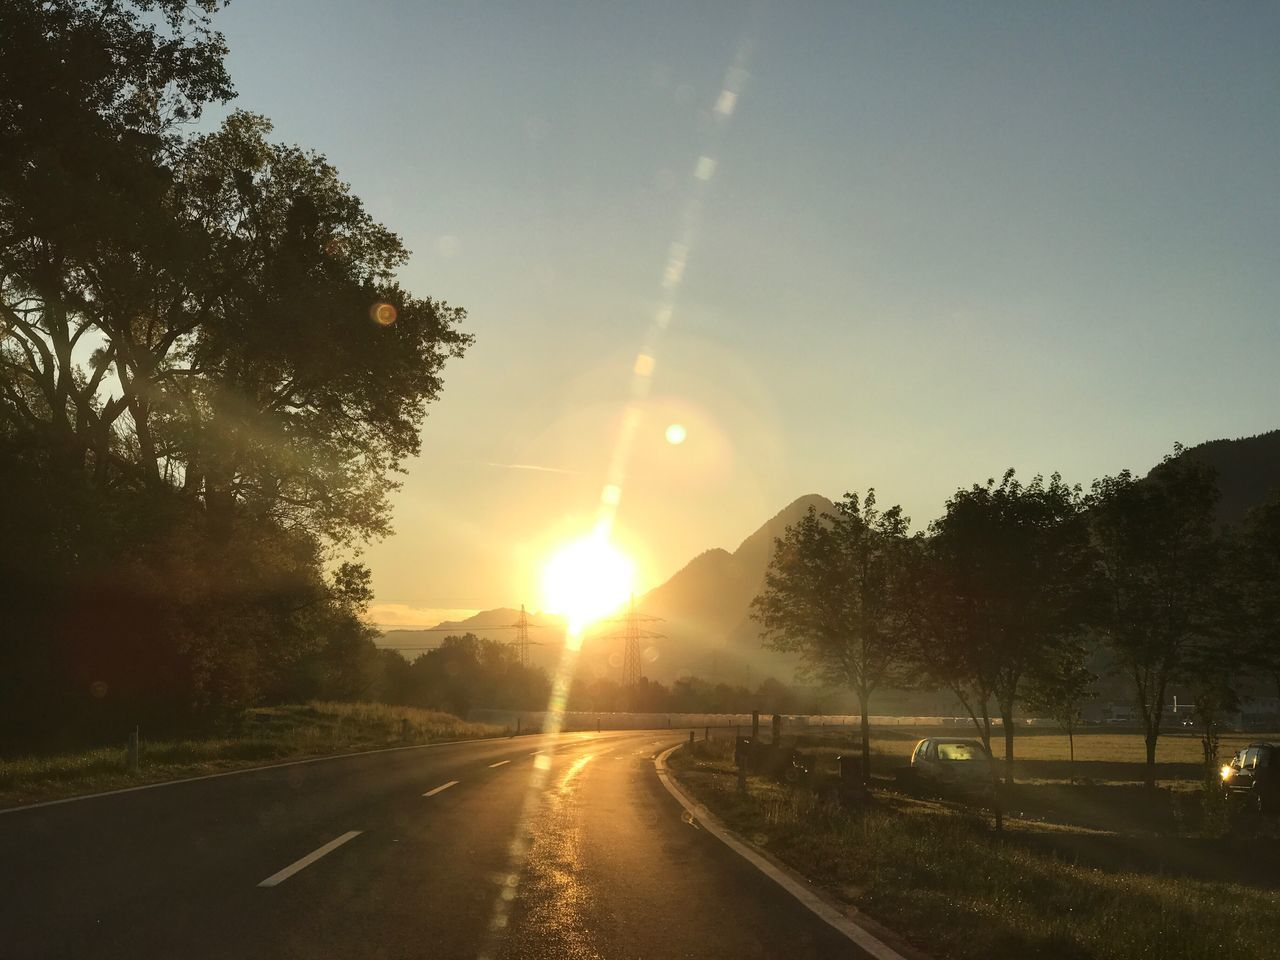 Sun Lens Flare Sunlight Sunbeam Sunset Road Tree Transportation The Way Forward No People Nature Outdoors Silhouette Beauty In Nature Scenics Sky Day